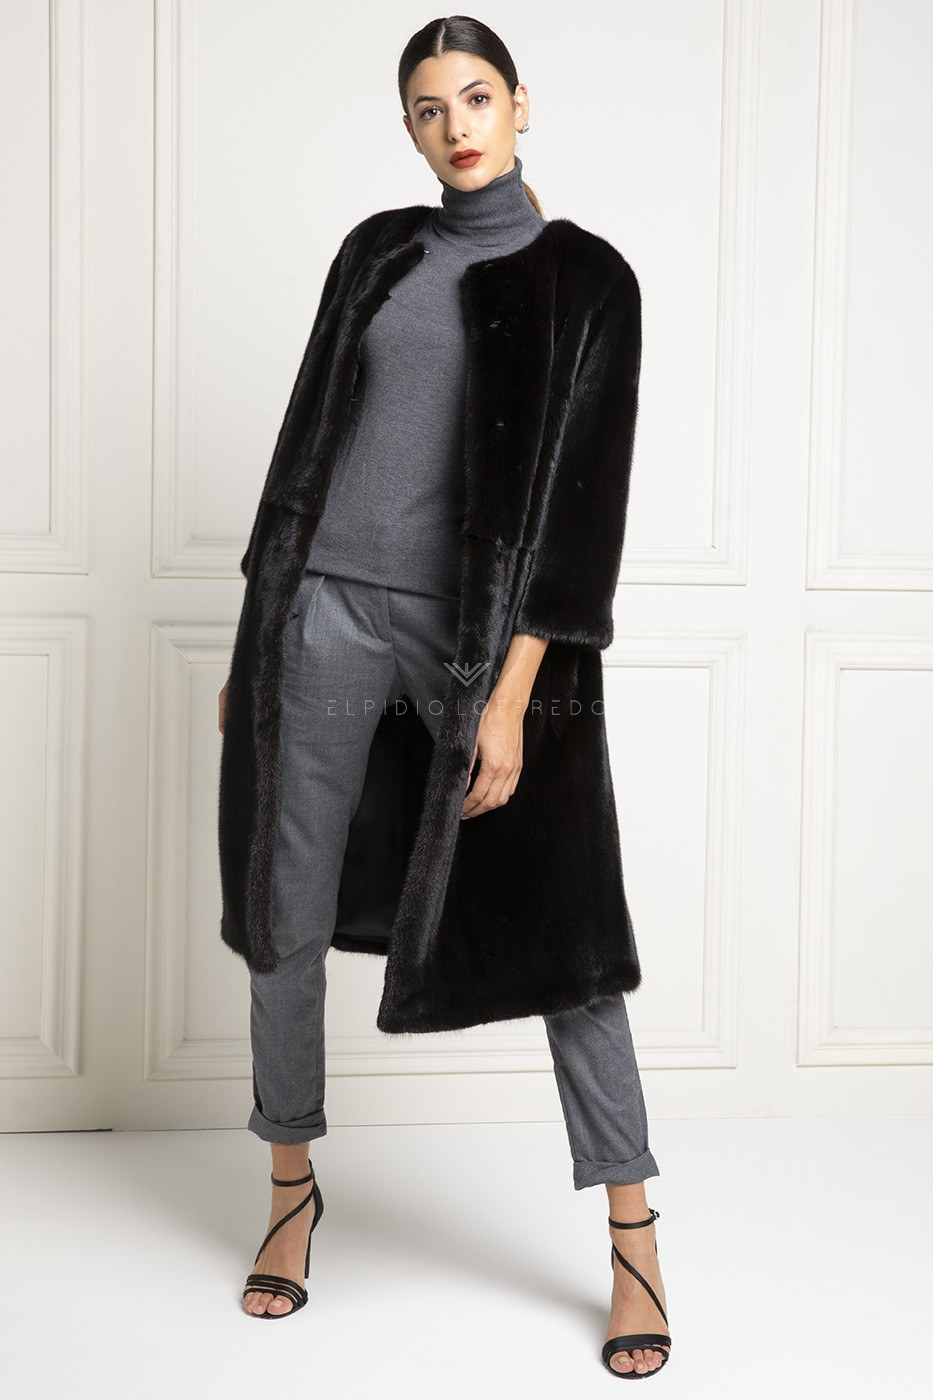 Blackglama Mink Coat with Plat Collar - Length 105 cm